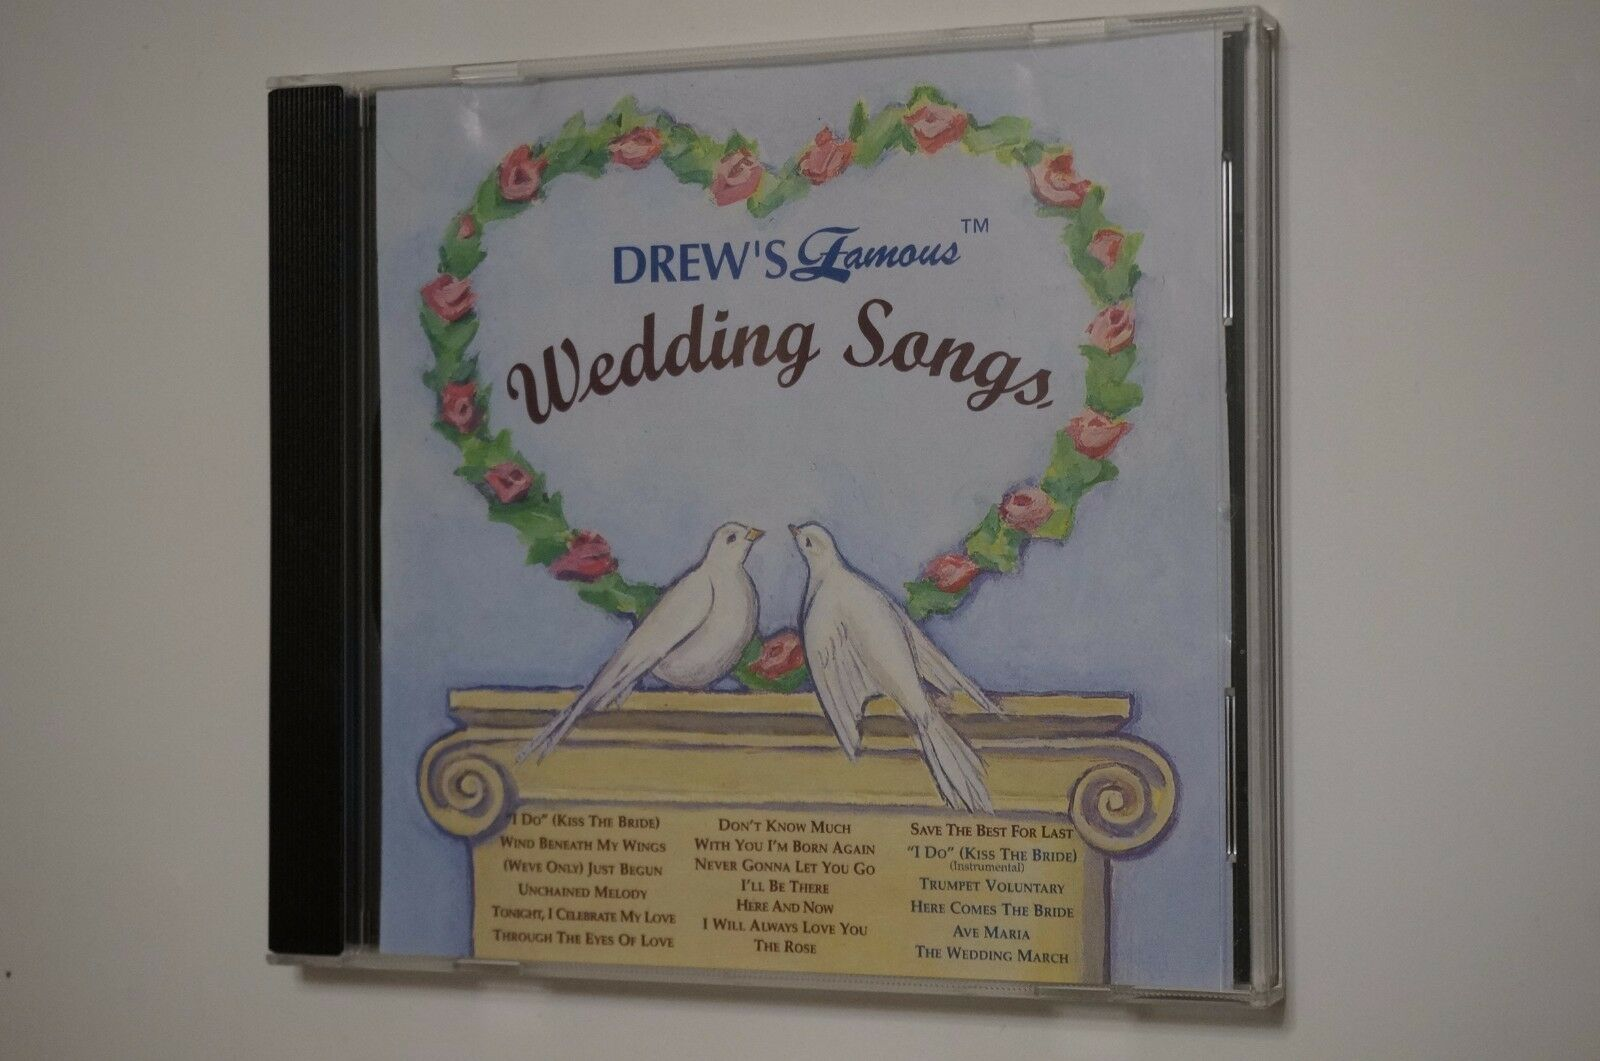 Drews Famous Party Music : Wedding Songs CD